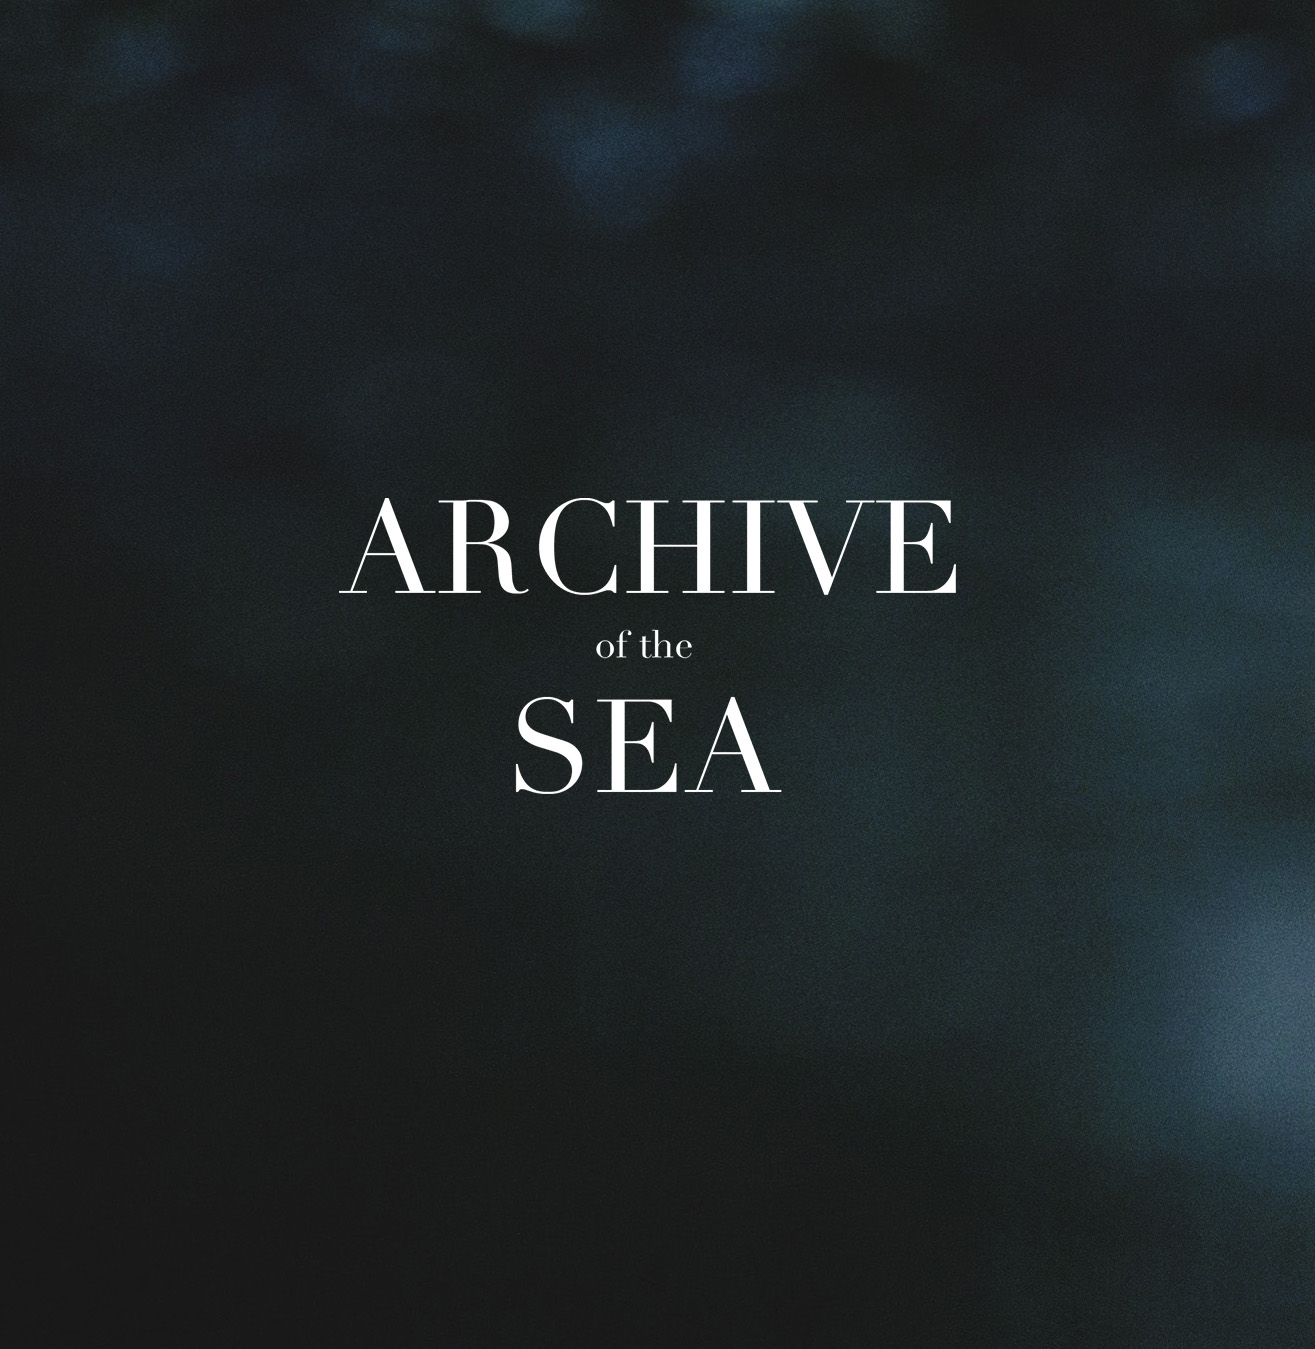 archive of the sea logo malene kyed